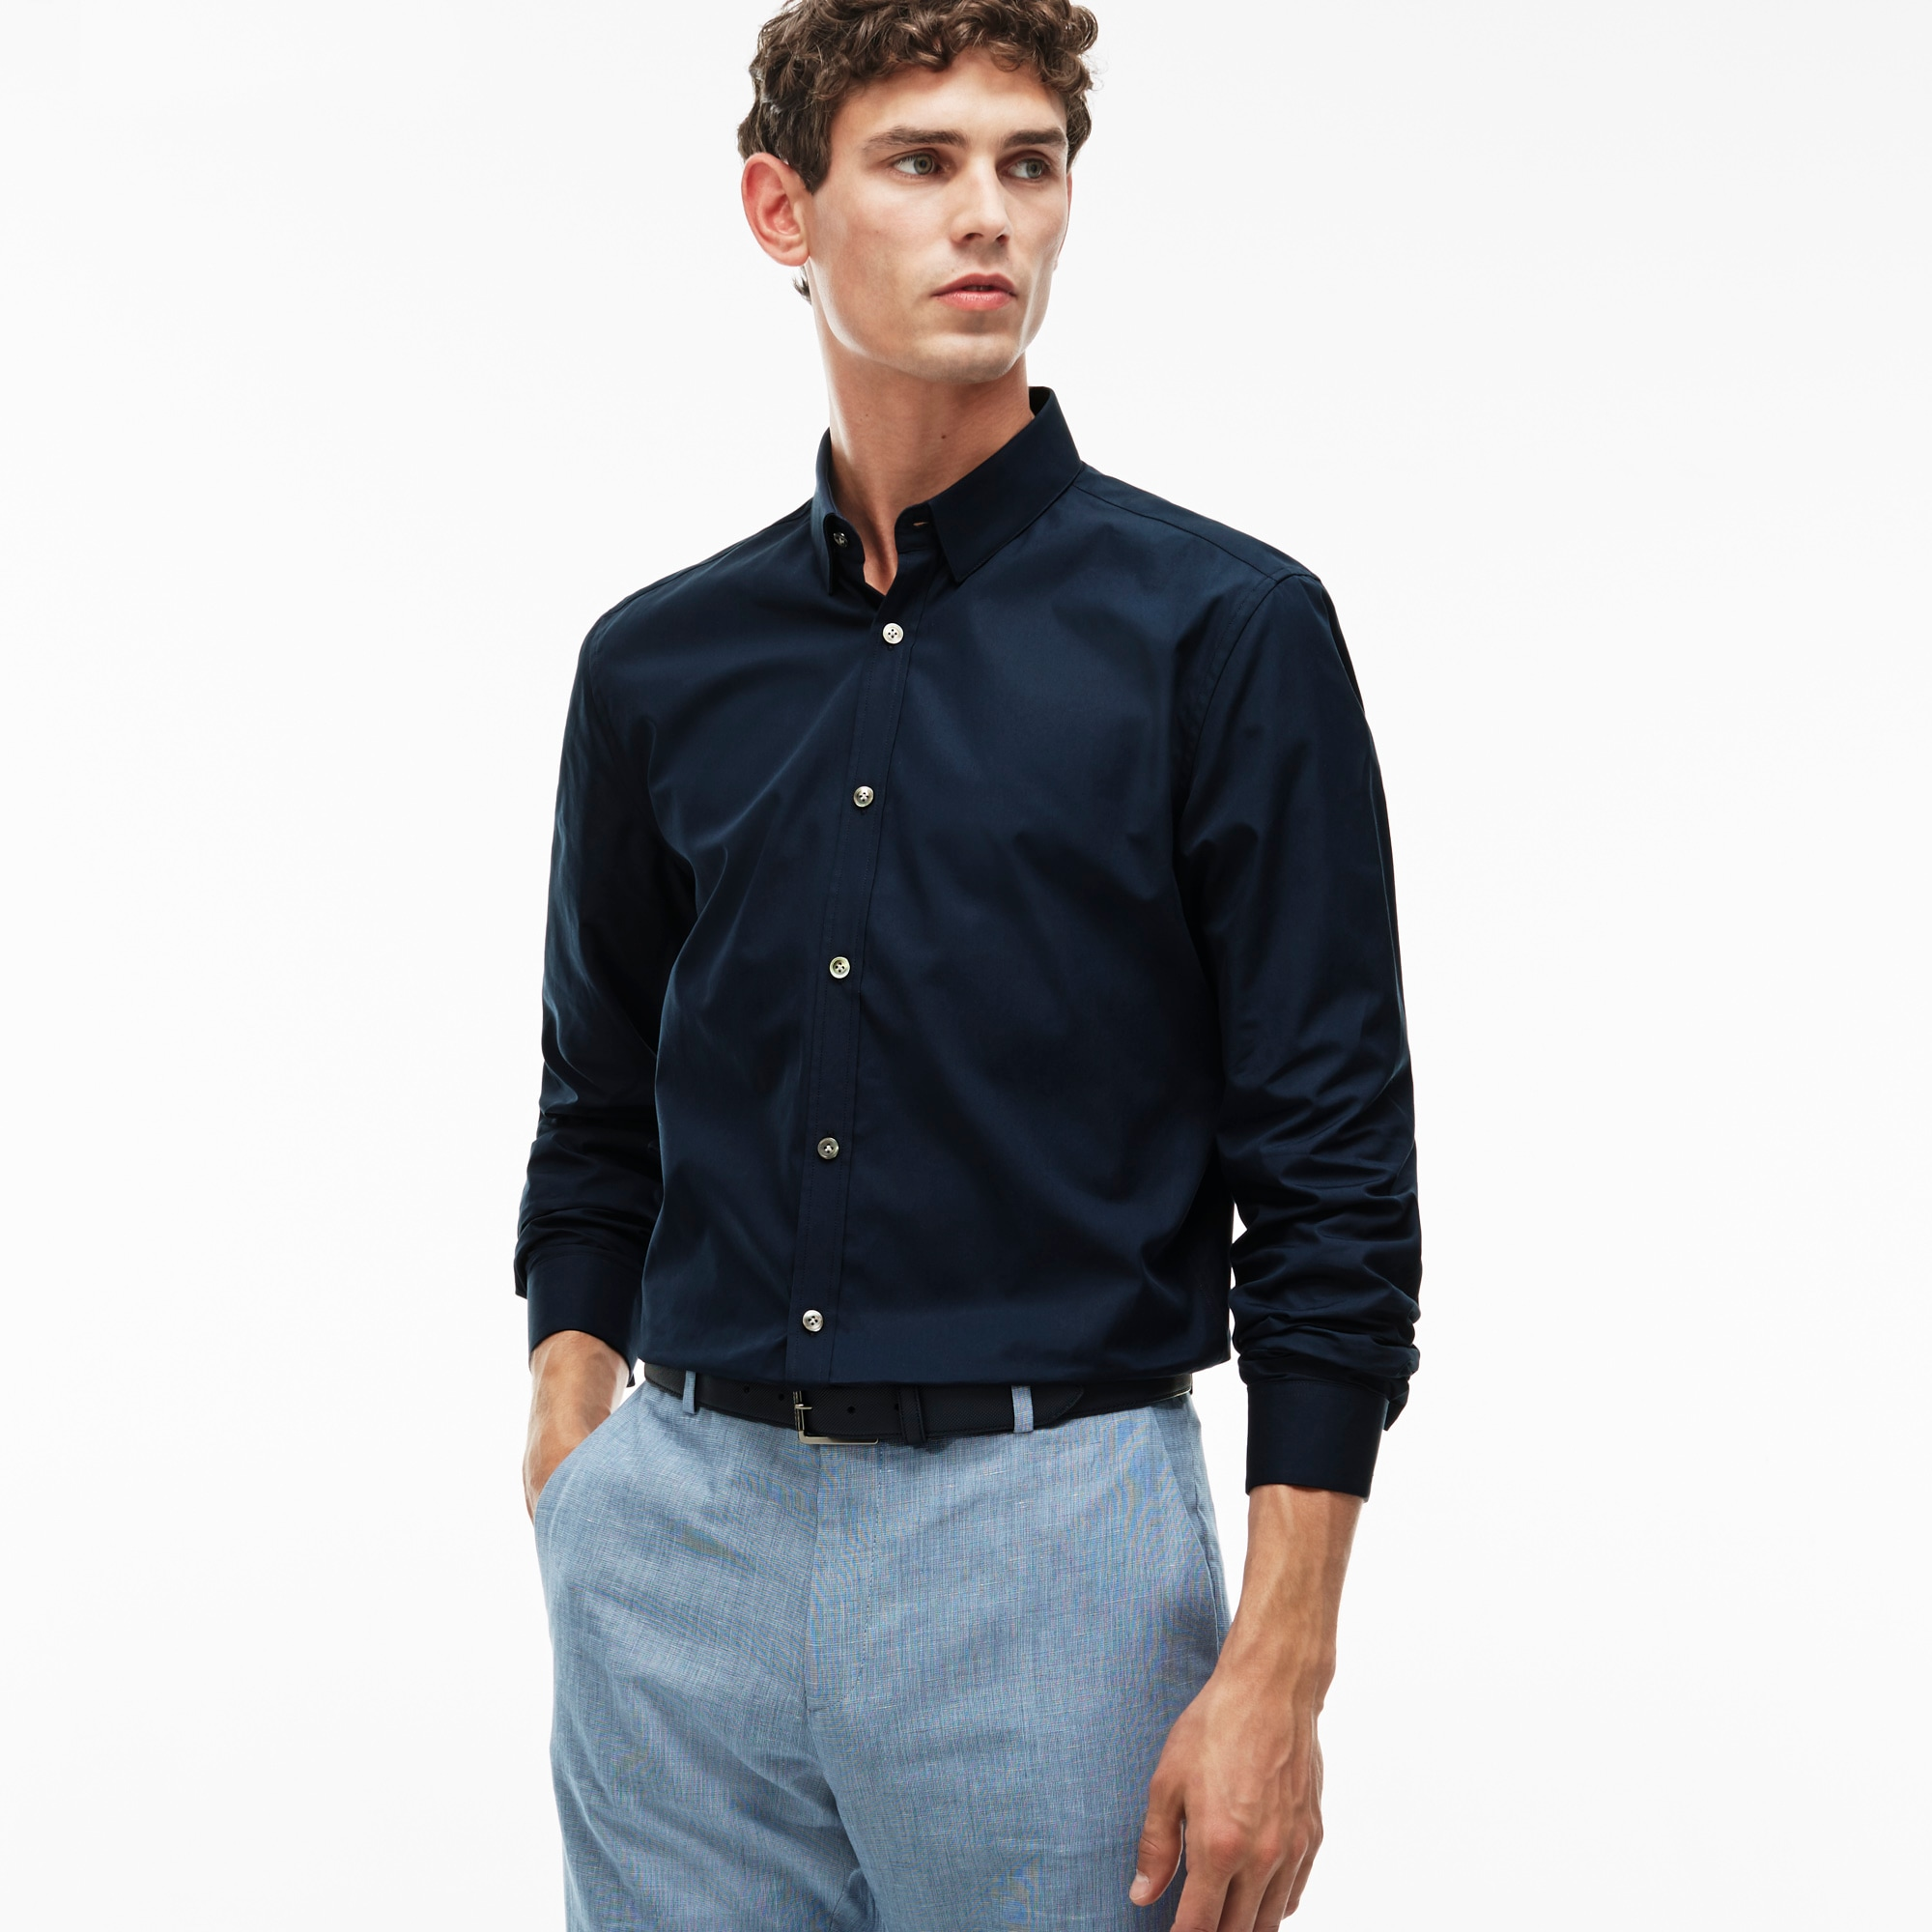 Men's Slim Fit Poplin Spread Collar Shirt